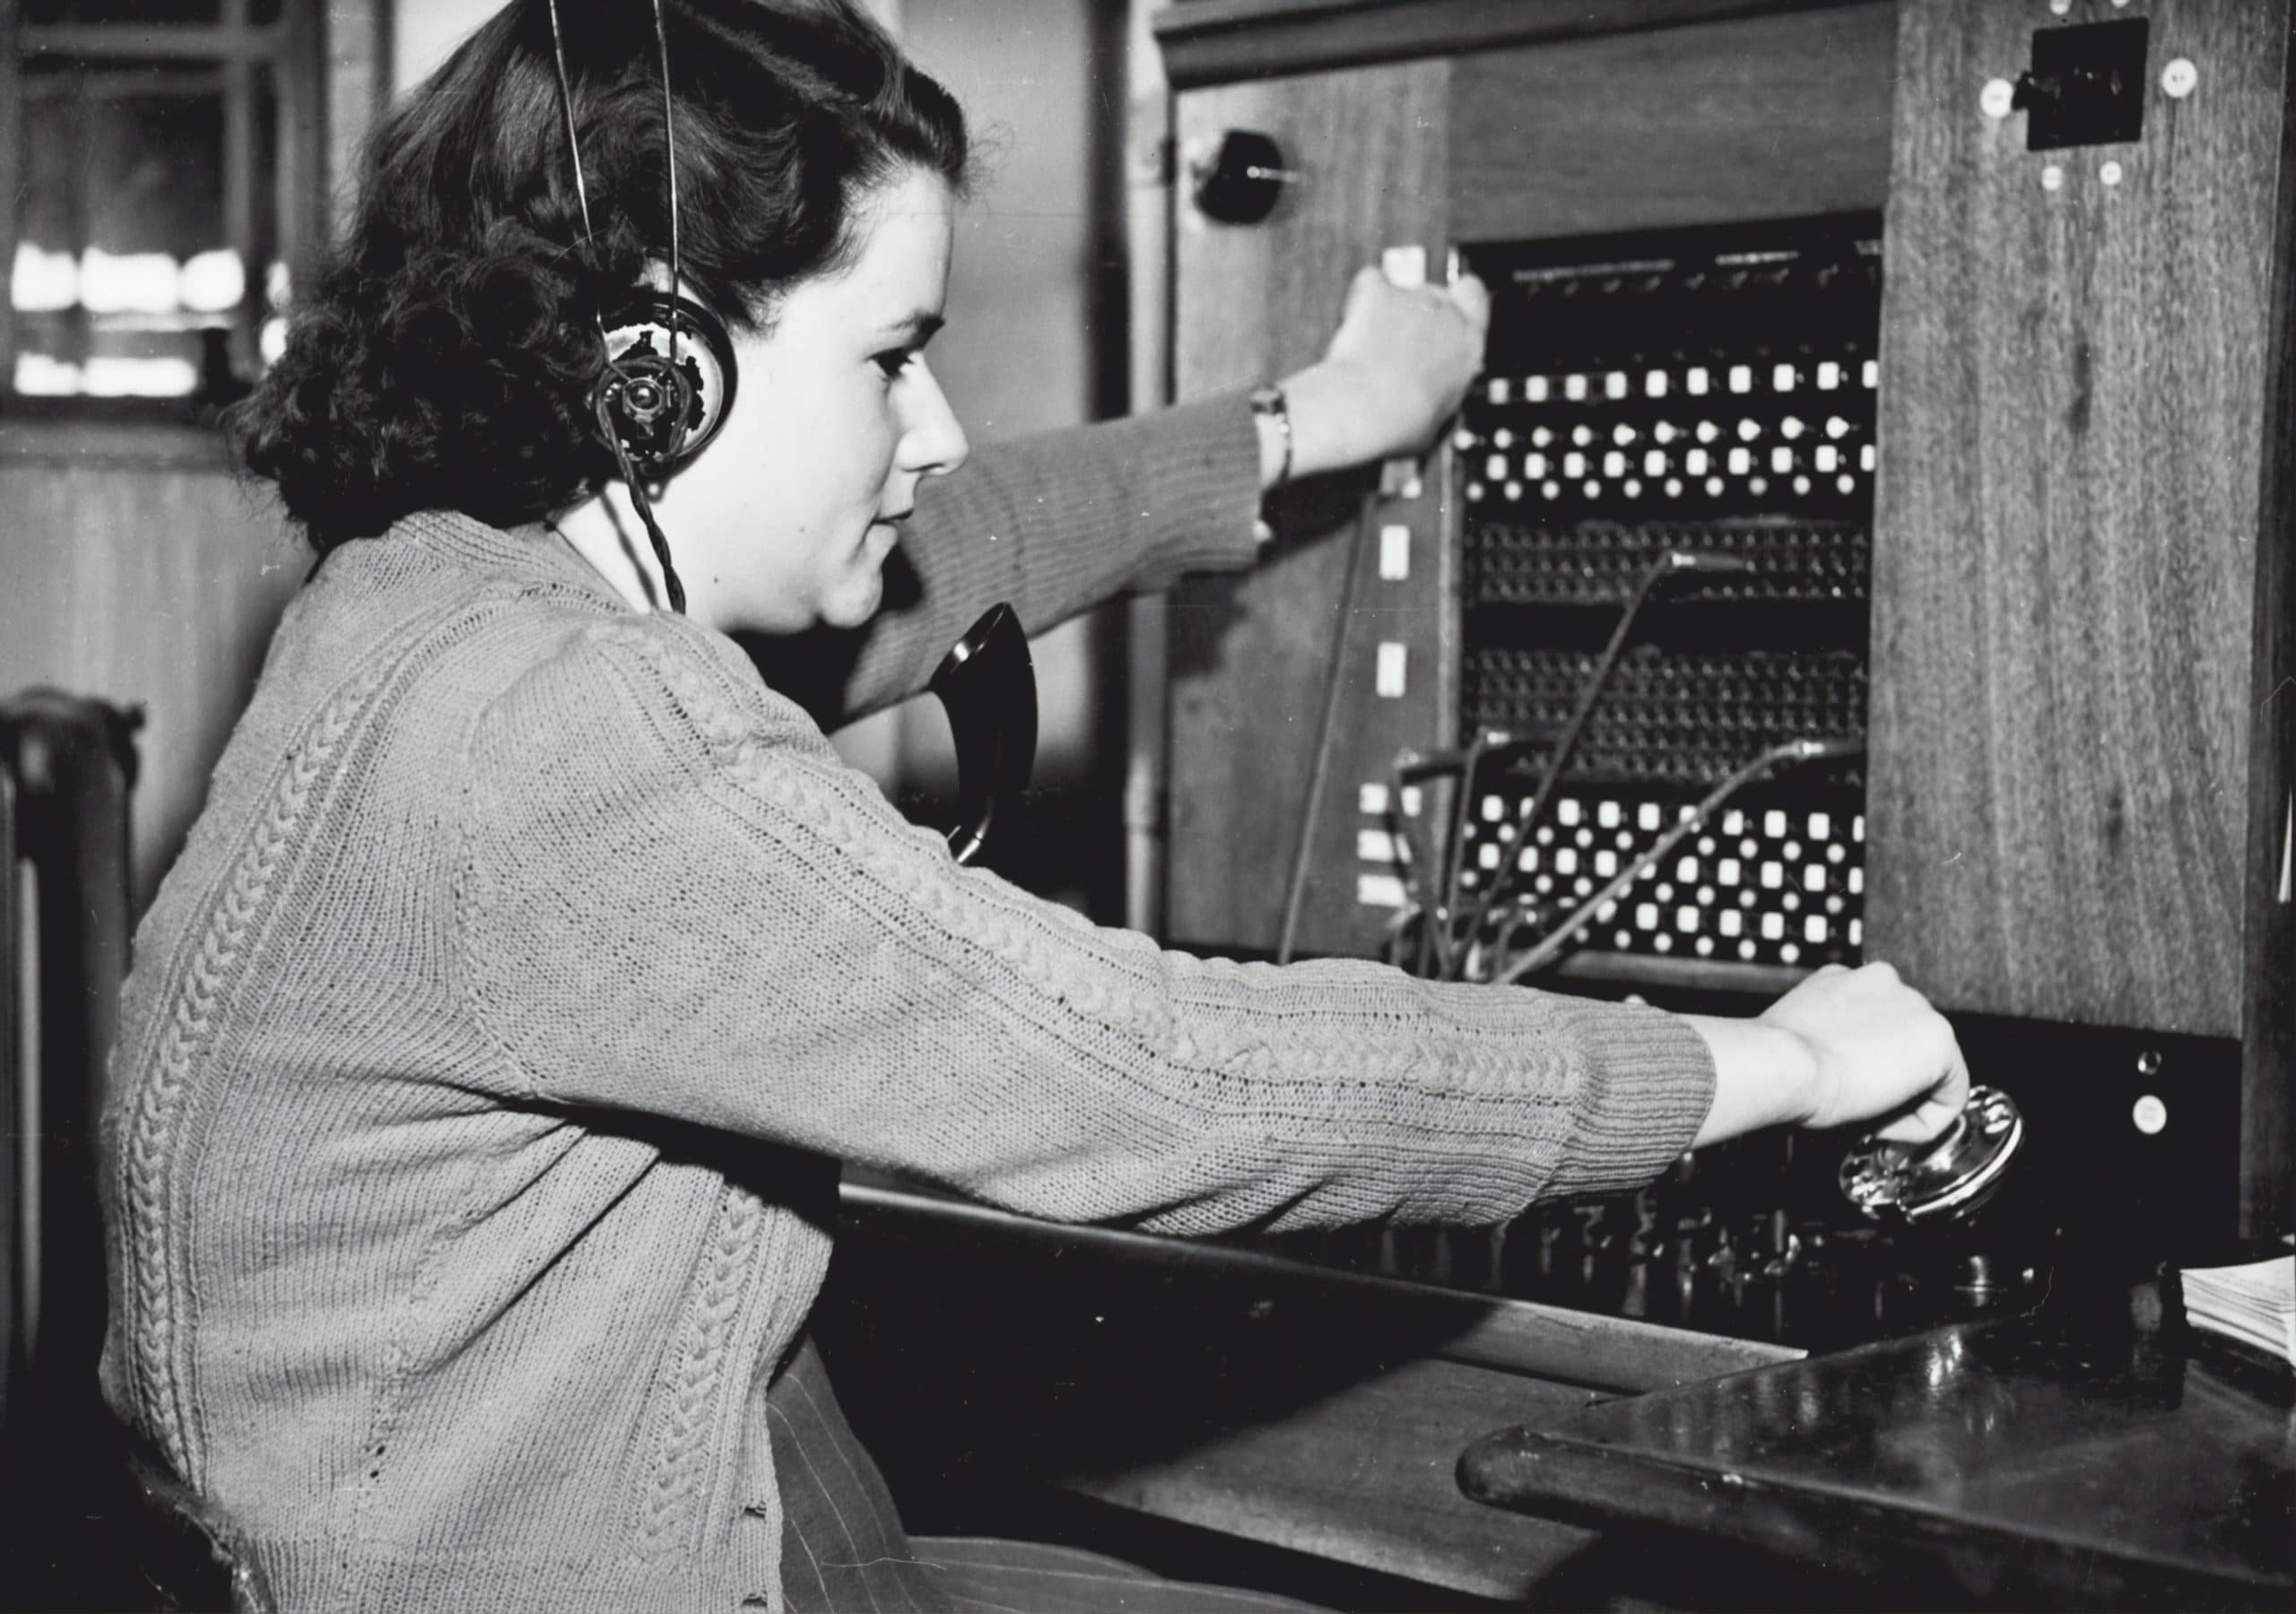 Old version of a contact center